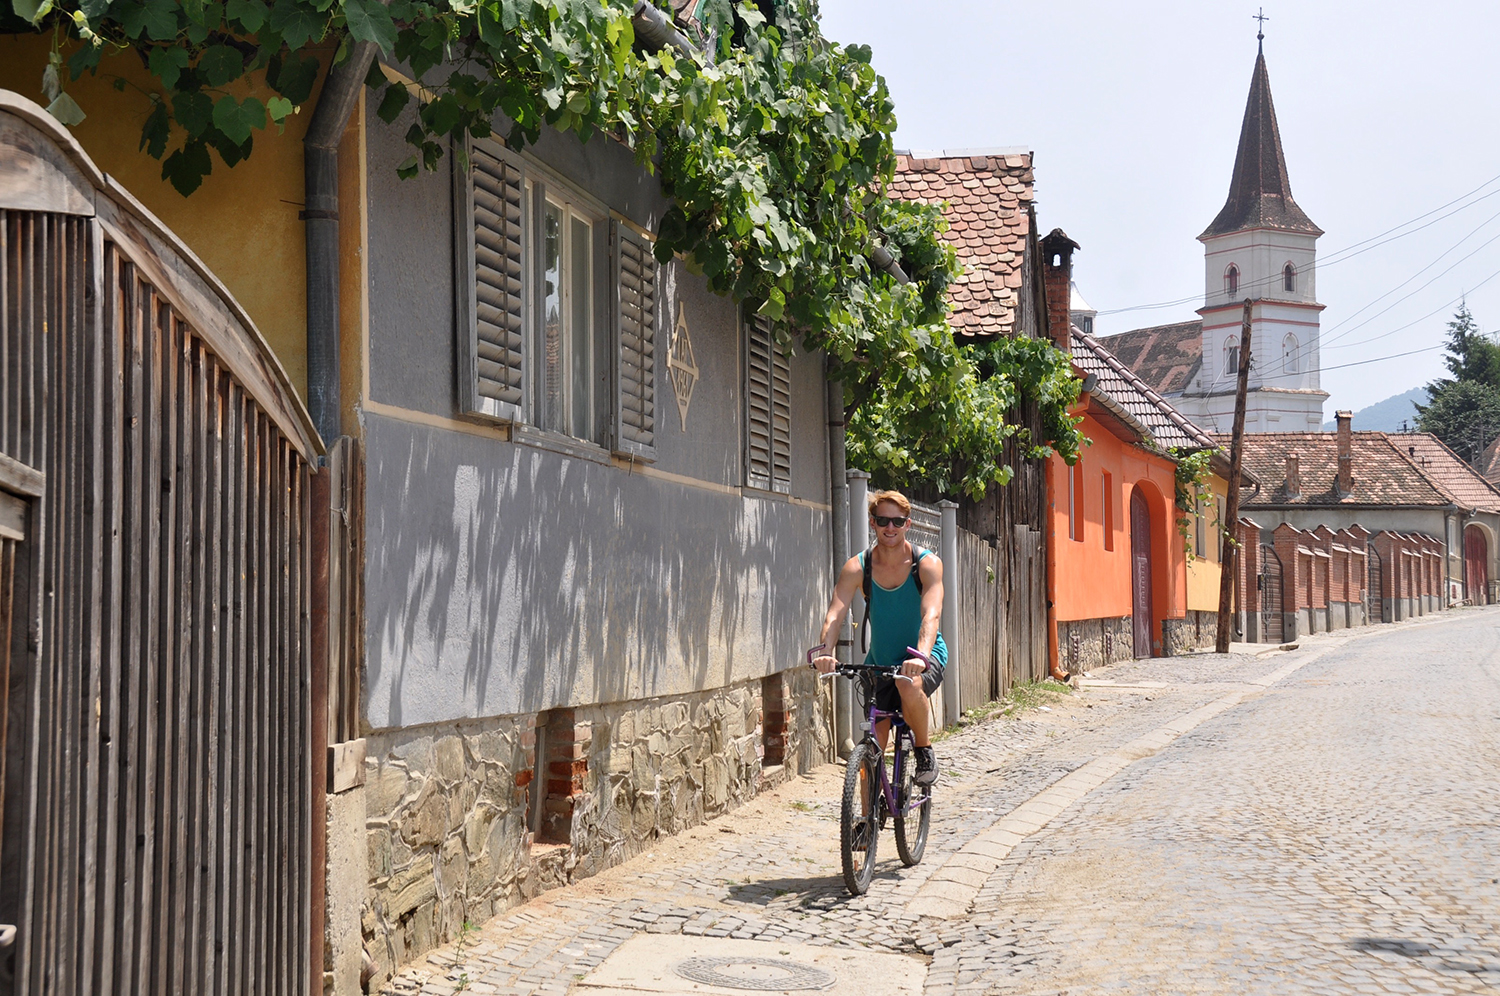 Biking in the Romanian countryside and villages near Sibiu